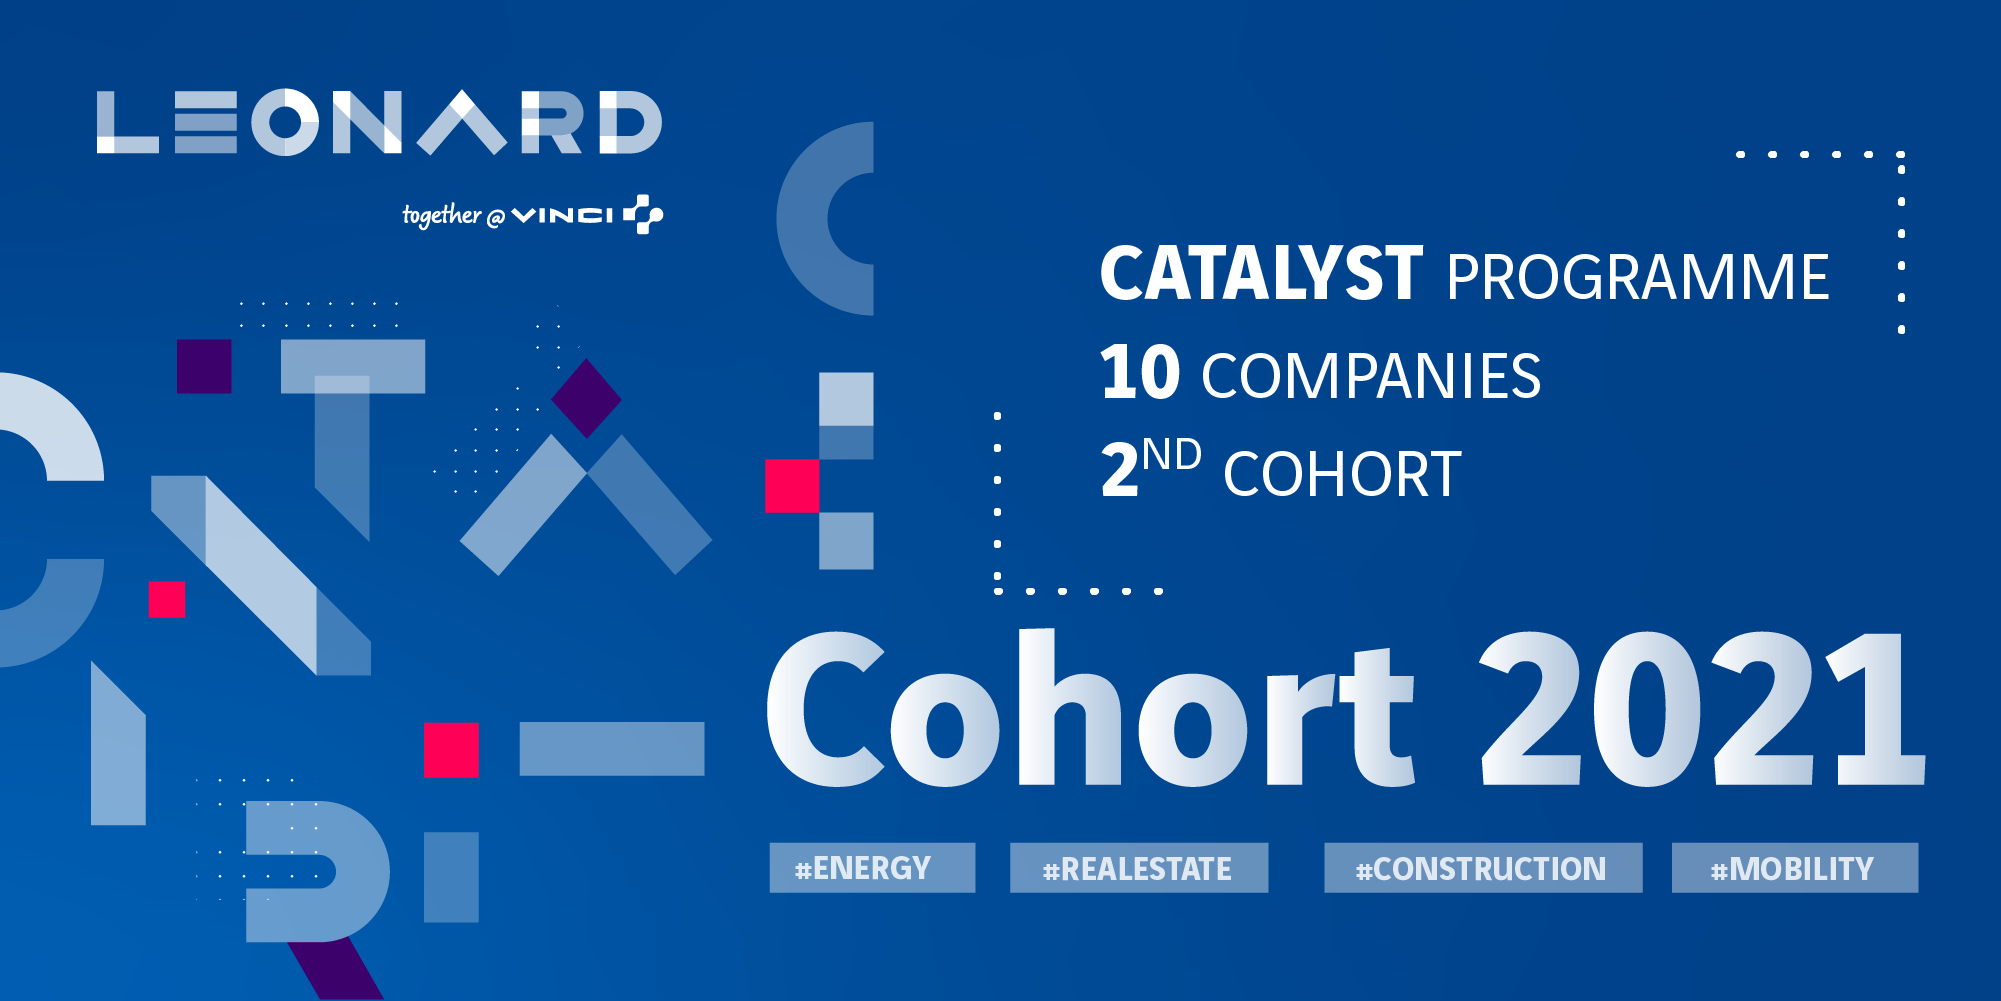 CATALYST: the 2nd cohort of Leonard's support program enrols 10 innovative companies